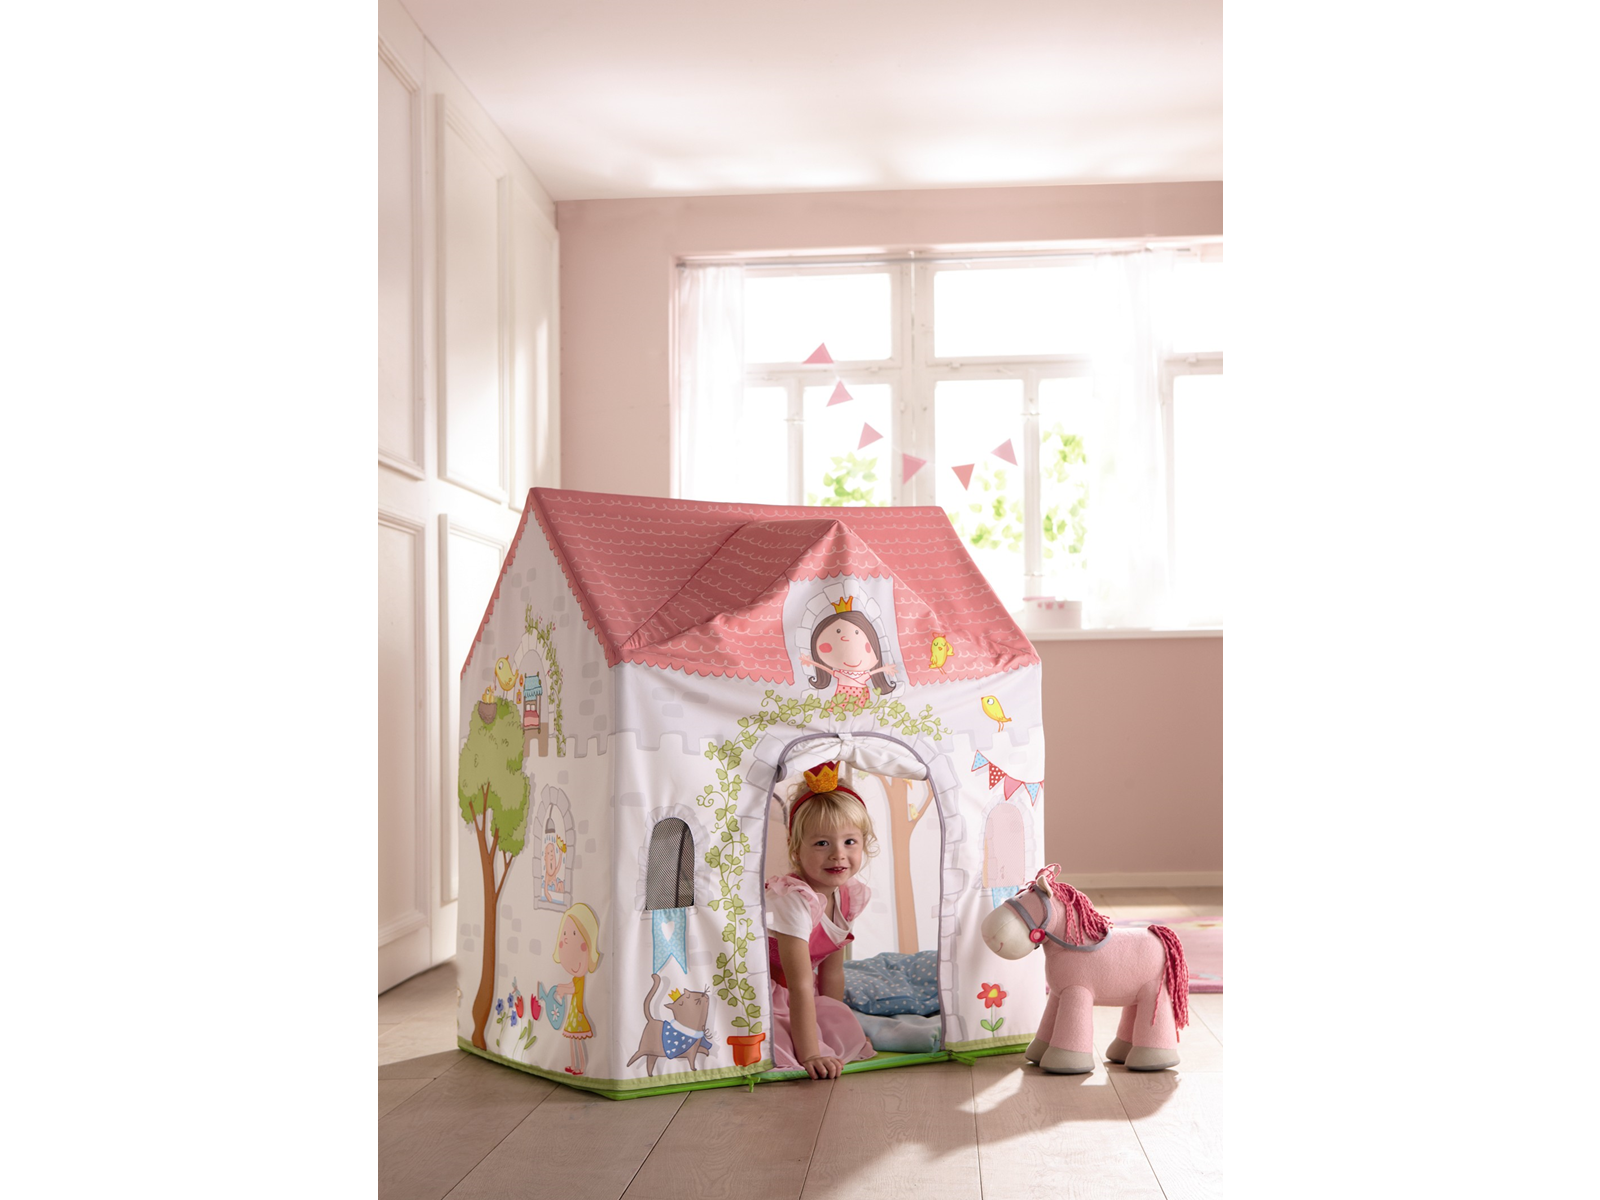 Haba Princess Rosalina Play Tent - Playhouse of Dreams ...  sc 1 st  Playhouse of Dreams & haba u2013 Playhouse of Dreams